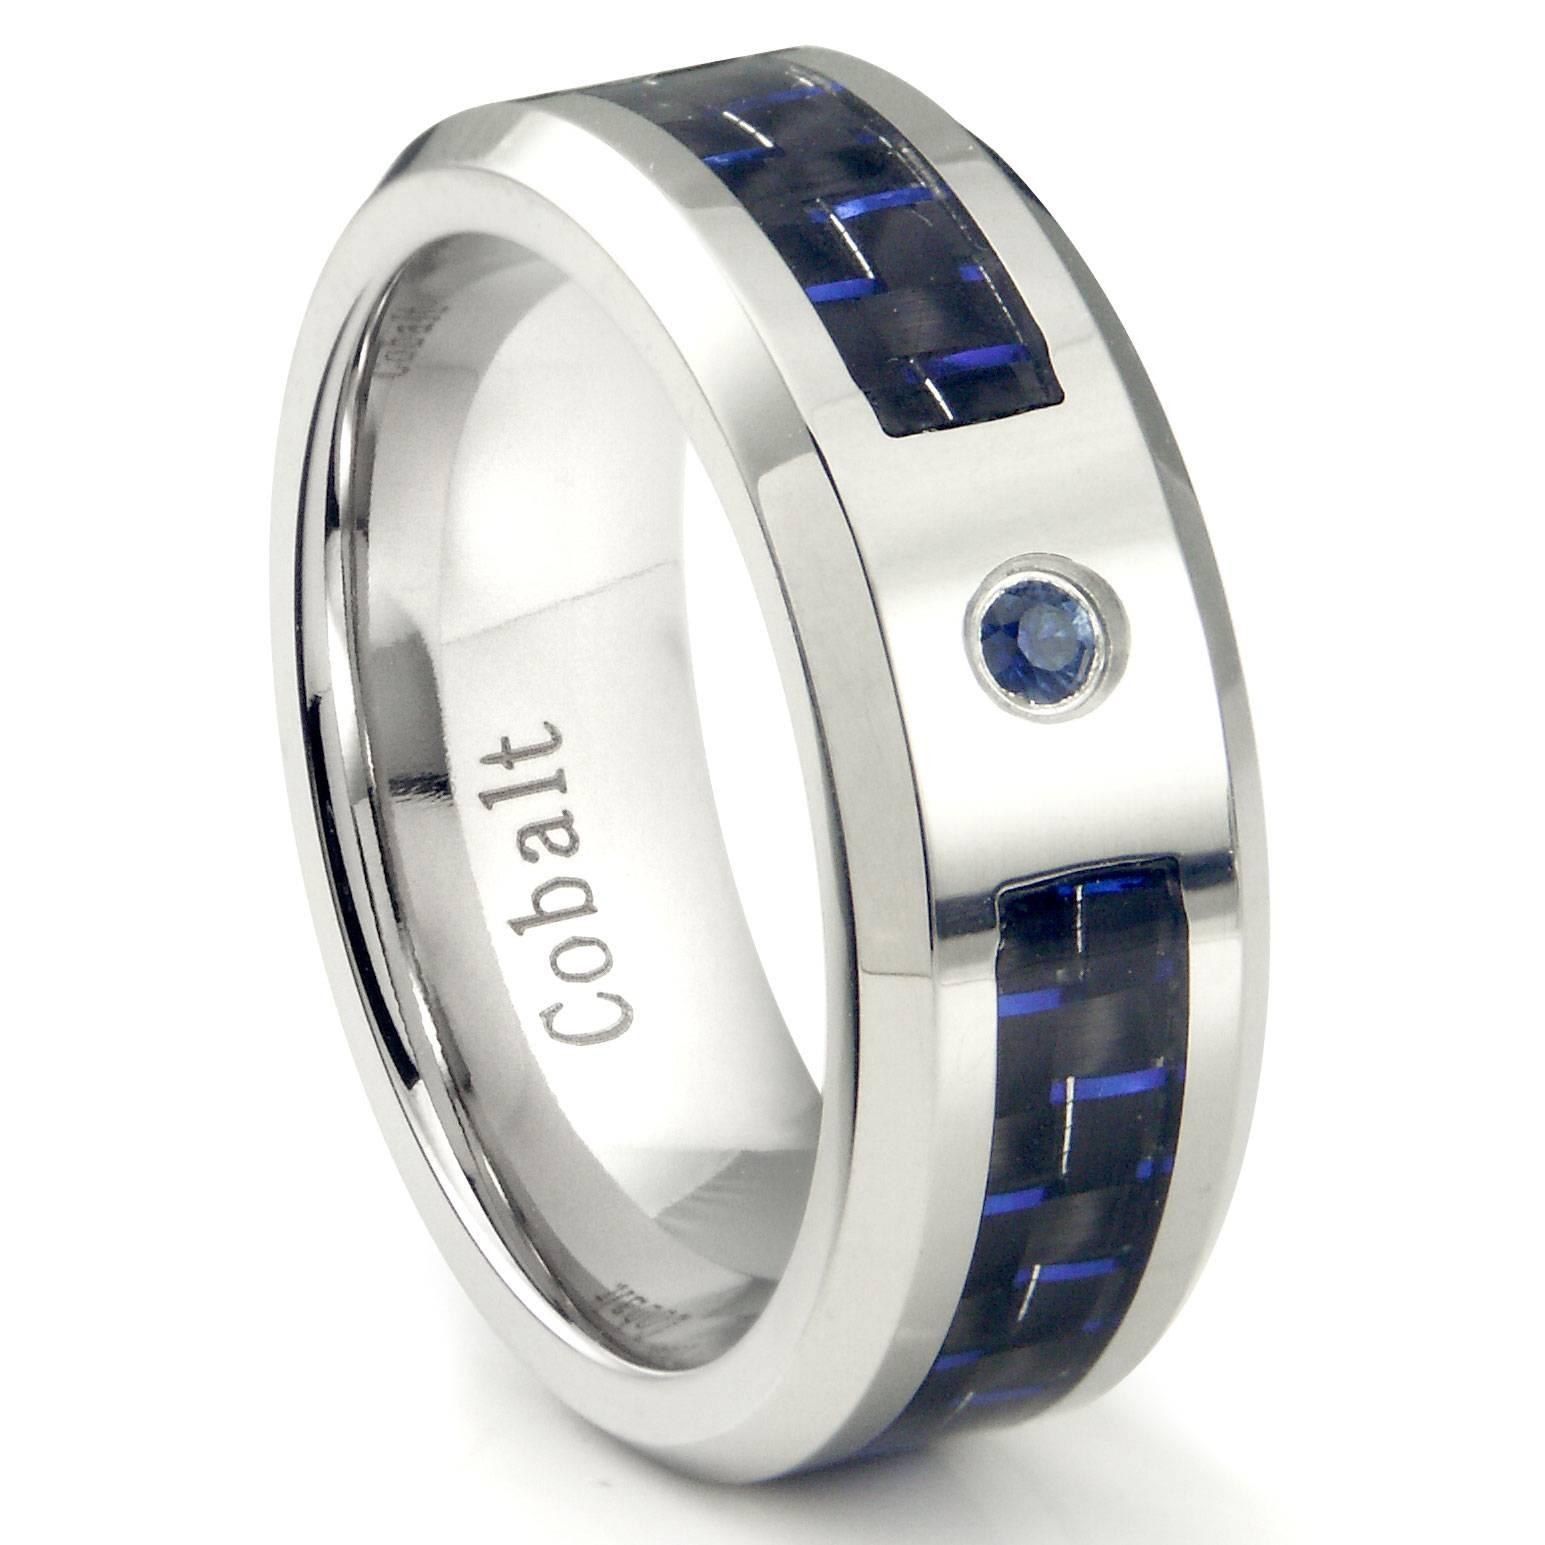 Cobalt Chrome 8Mm Blue Sapphire & Blue Carbon Fiber Inlay Wedding Within Men's Wedding Bands With Sapphires (View 5 of 15)